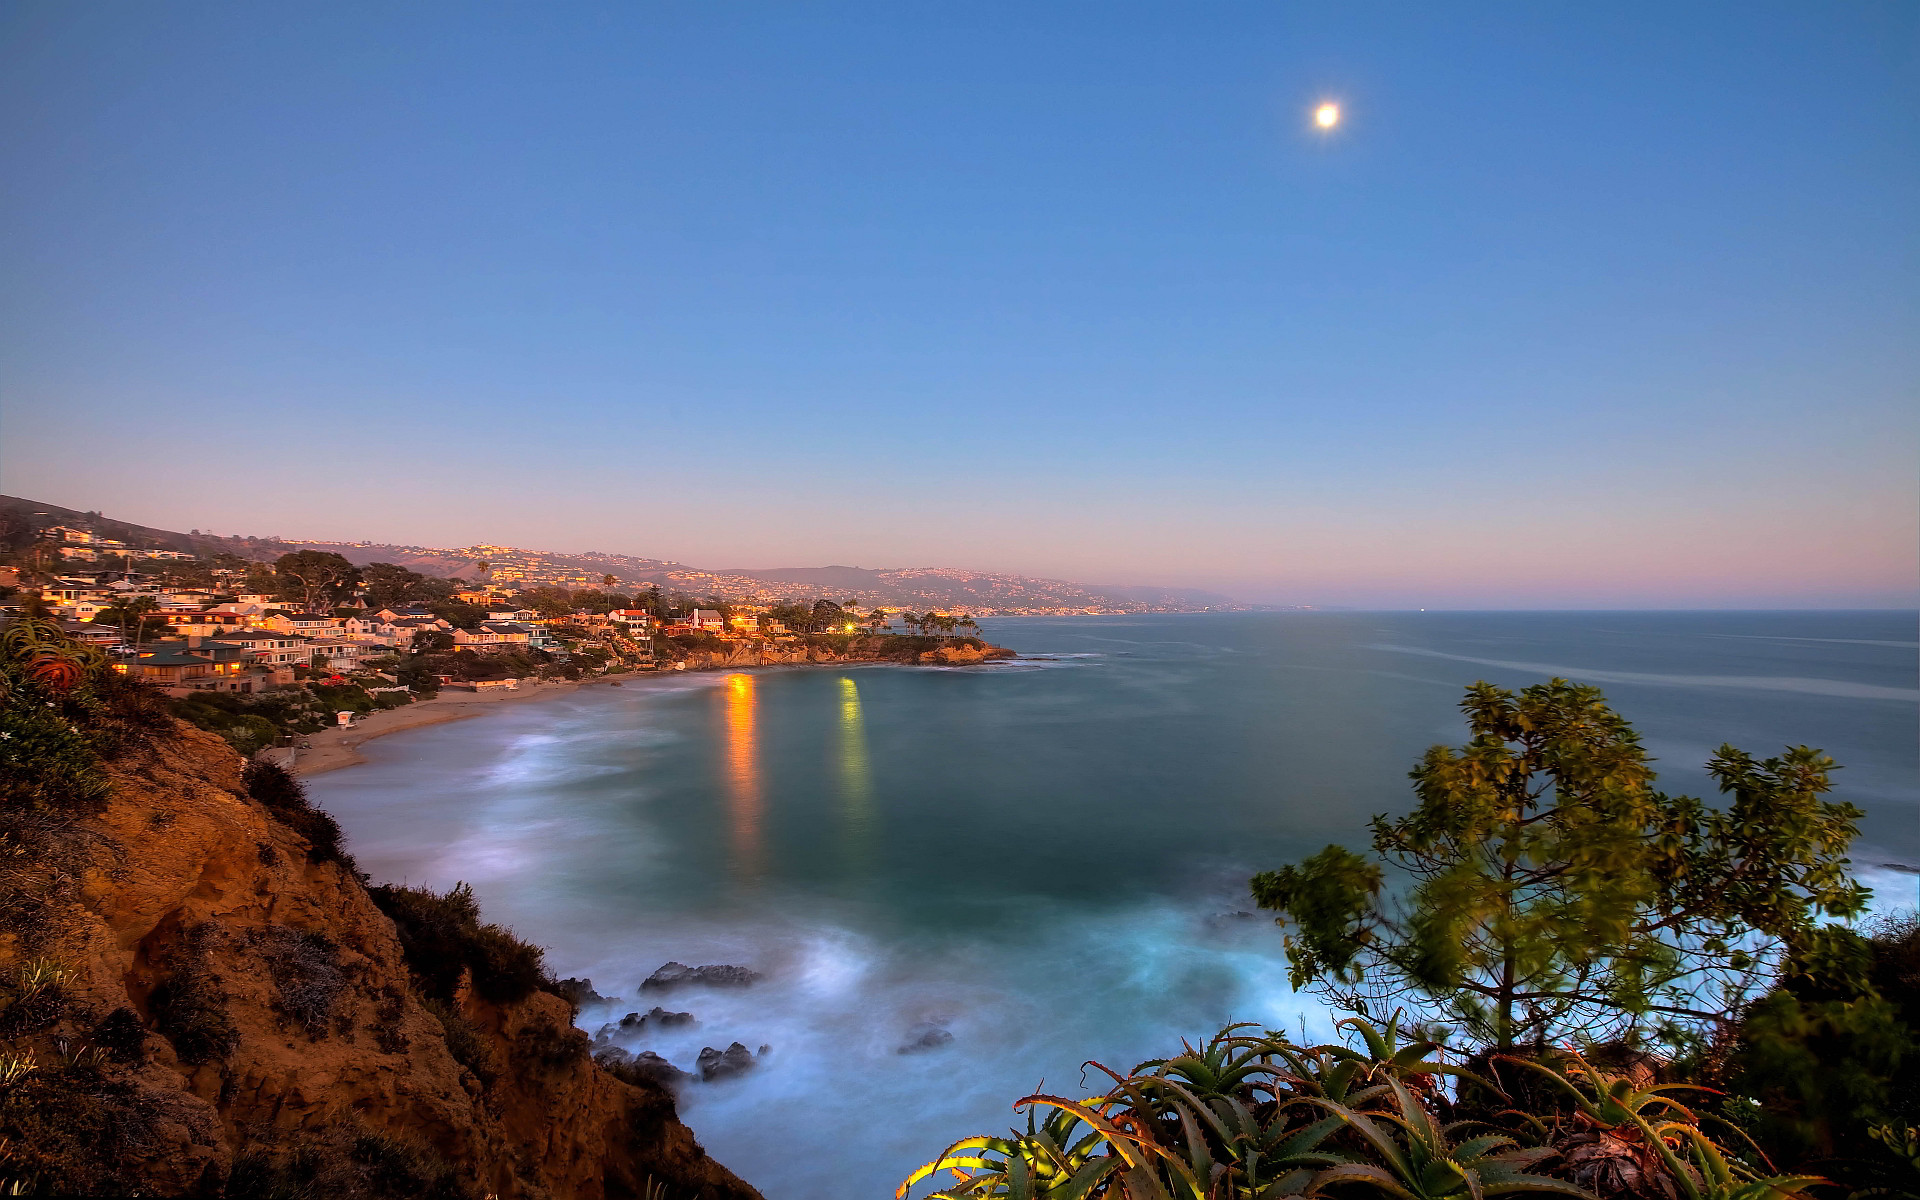 Free Download 42 HD California Wallpapers For Desktop And Mobile